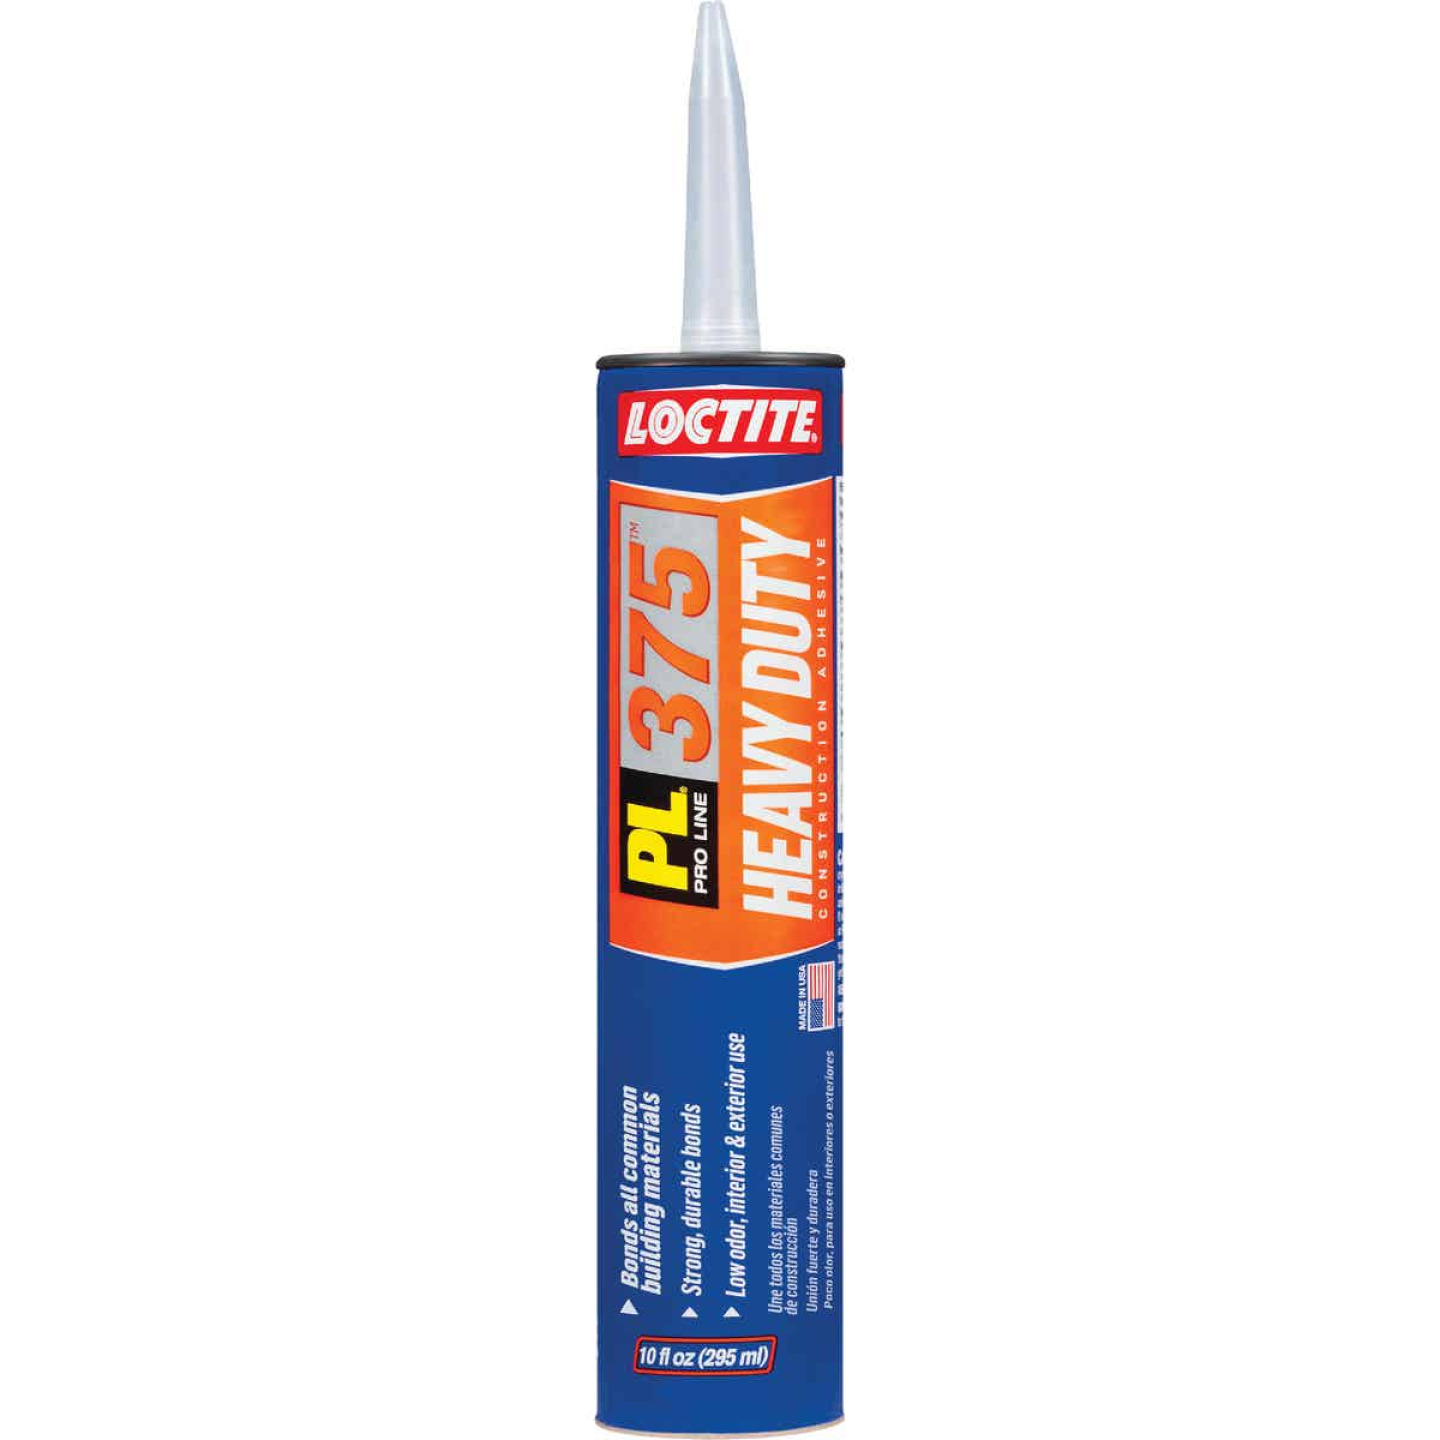 LOCTITE PL 375 10 Oz. Heavy Duty Construction Adhesive Image 1